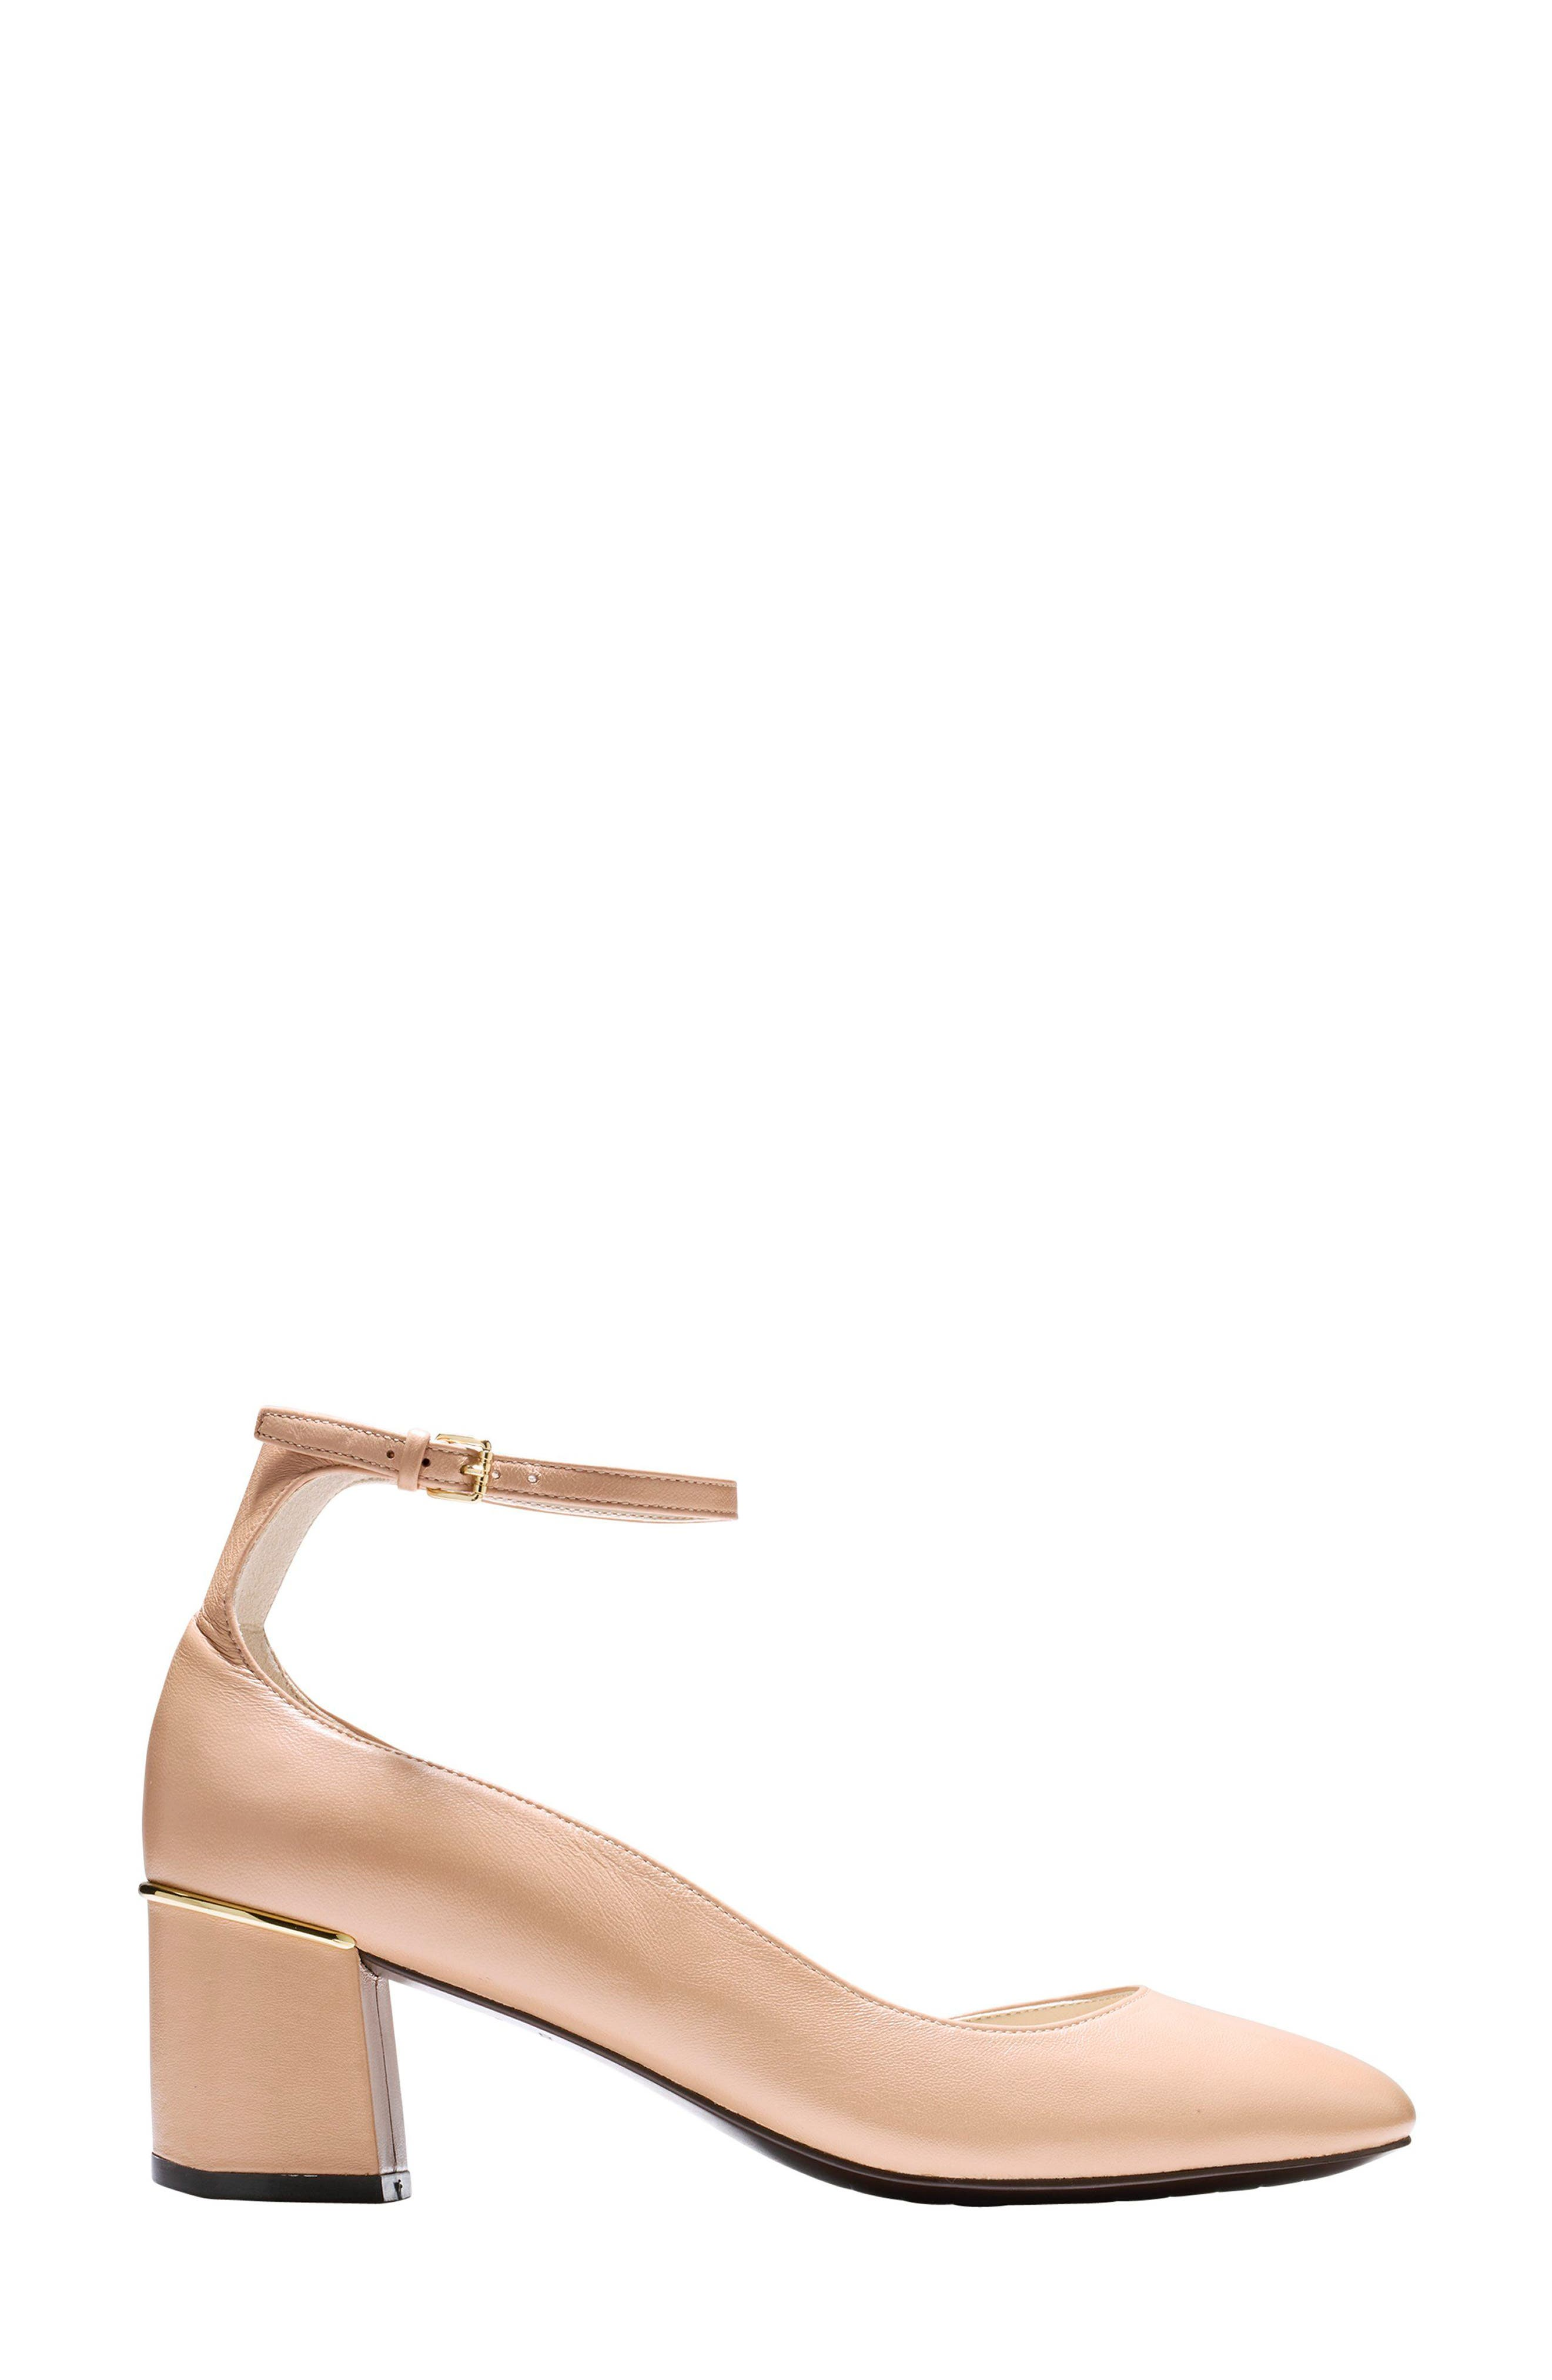 Warner Ankle Strap Pump,                             Alternate thumbnail 3, color,                             NUDE LEATHER